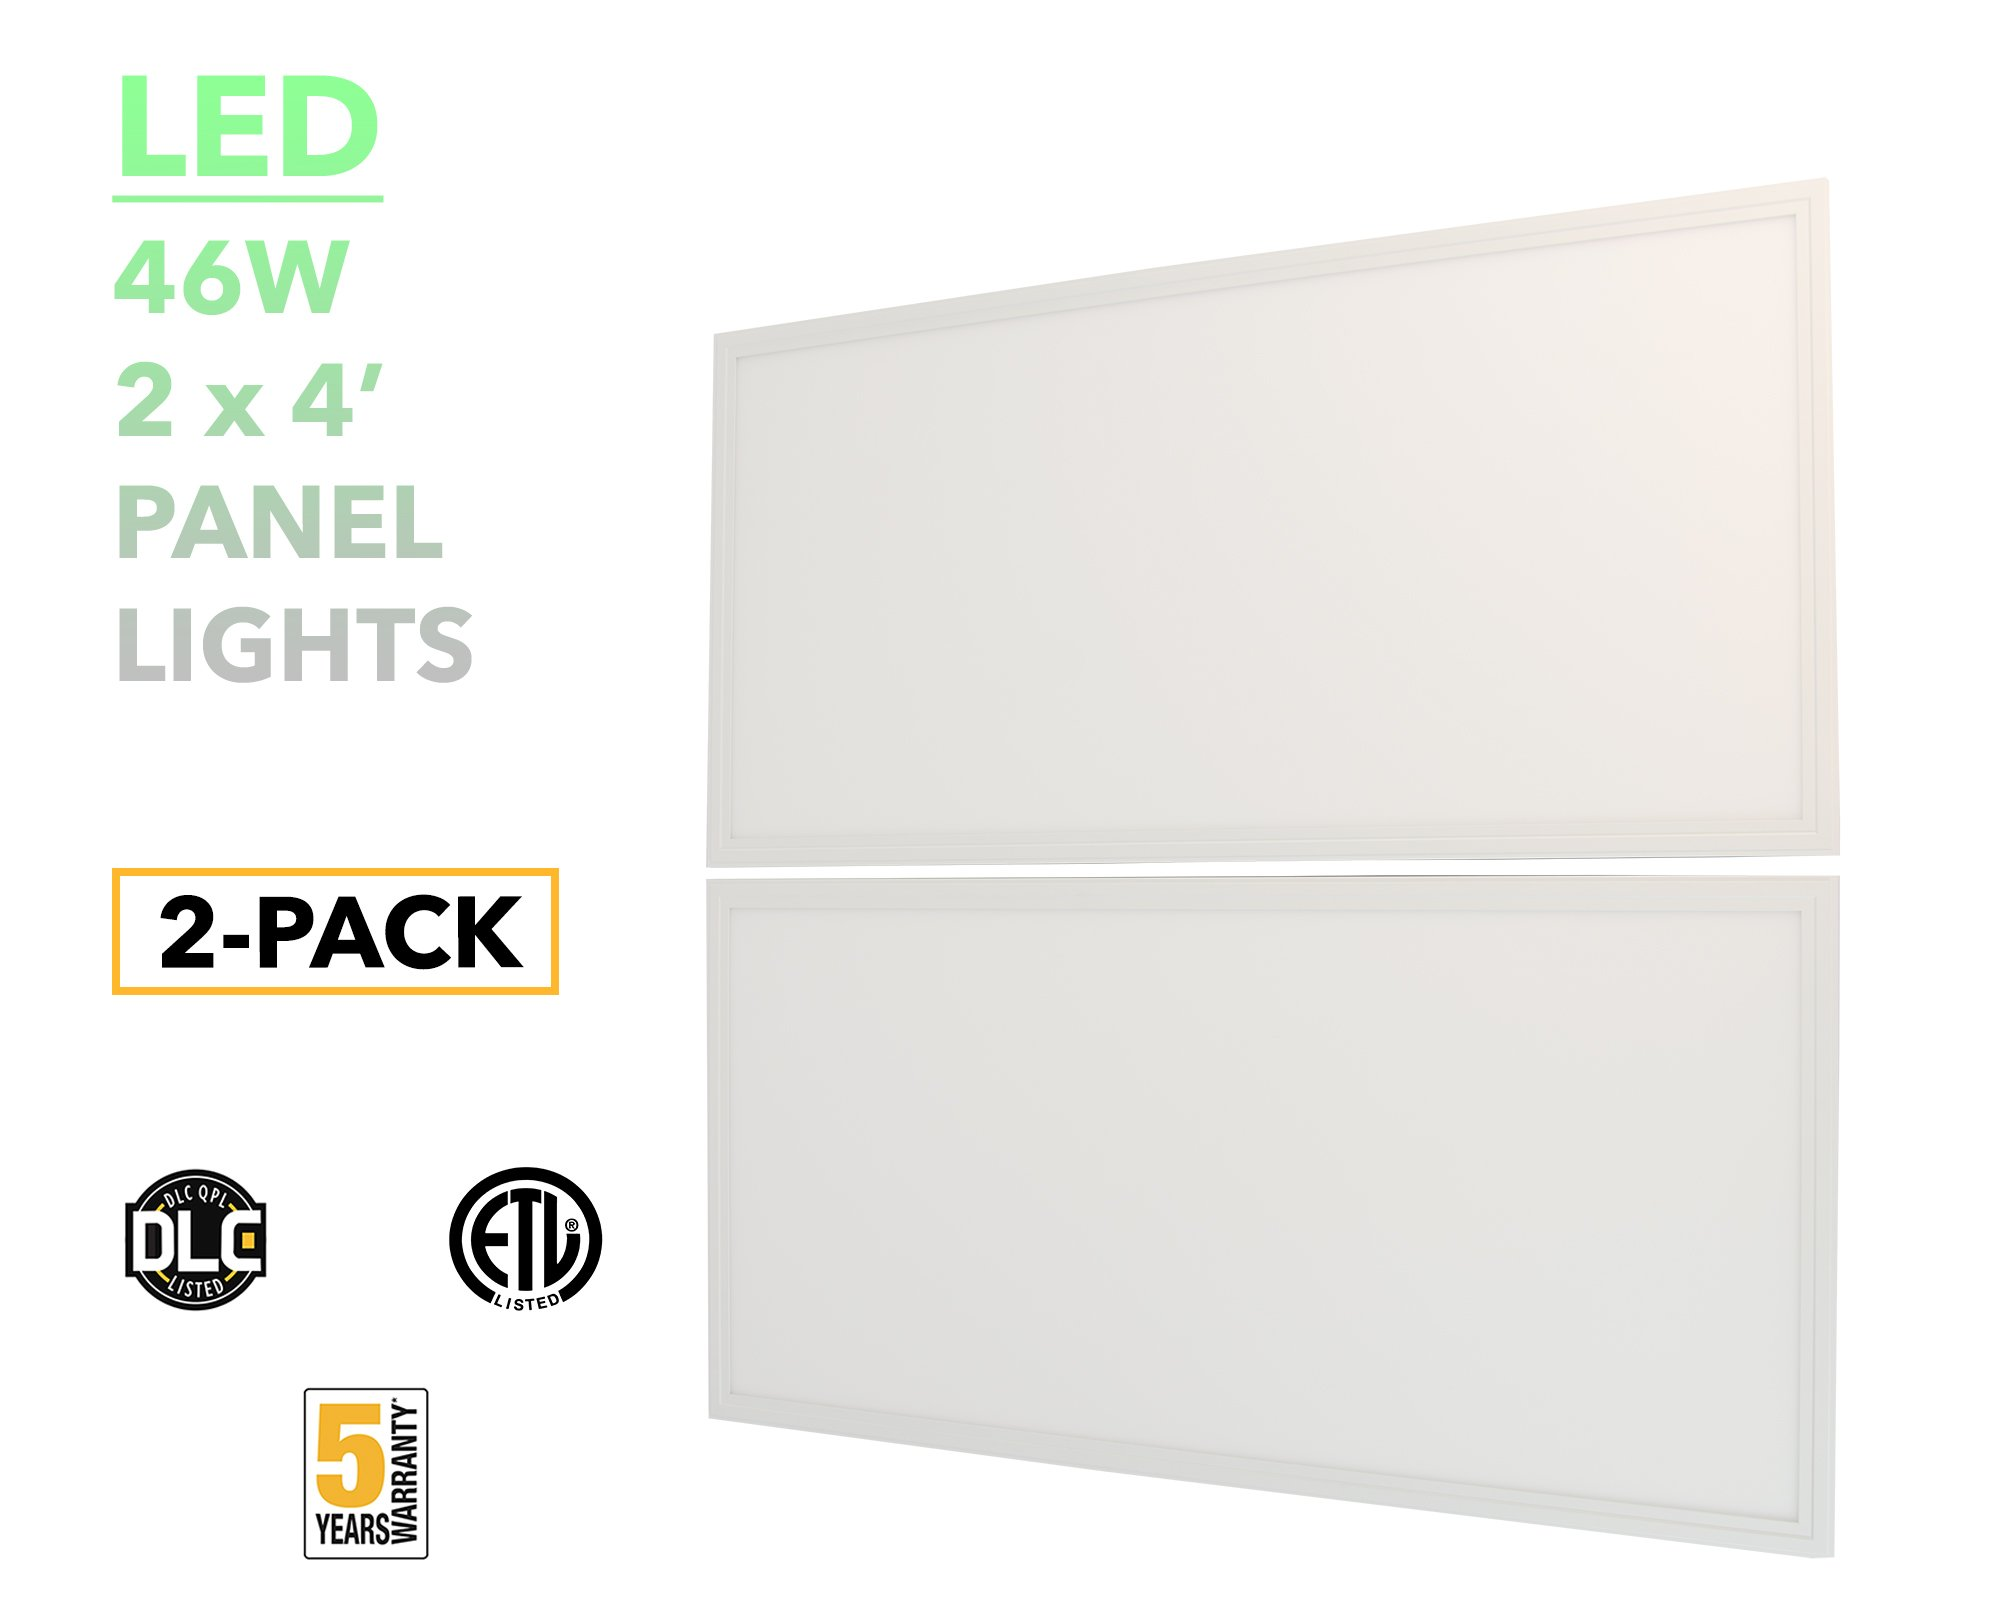 American Greenpower USA LED 2x4 Panel Light Troffer, 46W 4000K, Dimmable, 125lm/w Efficiency, DLC Premium 4.2, (2-PACK)